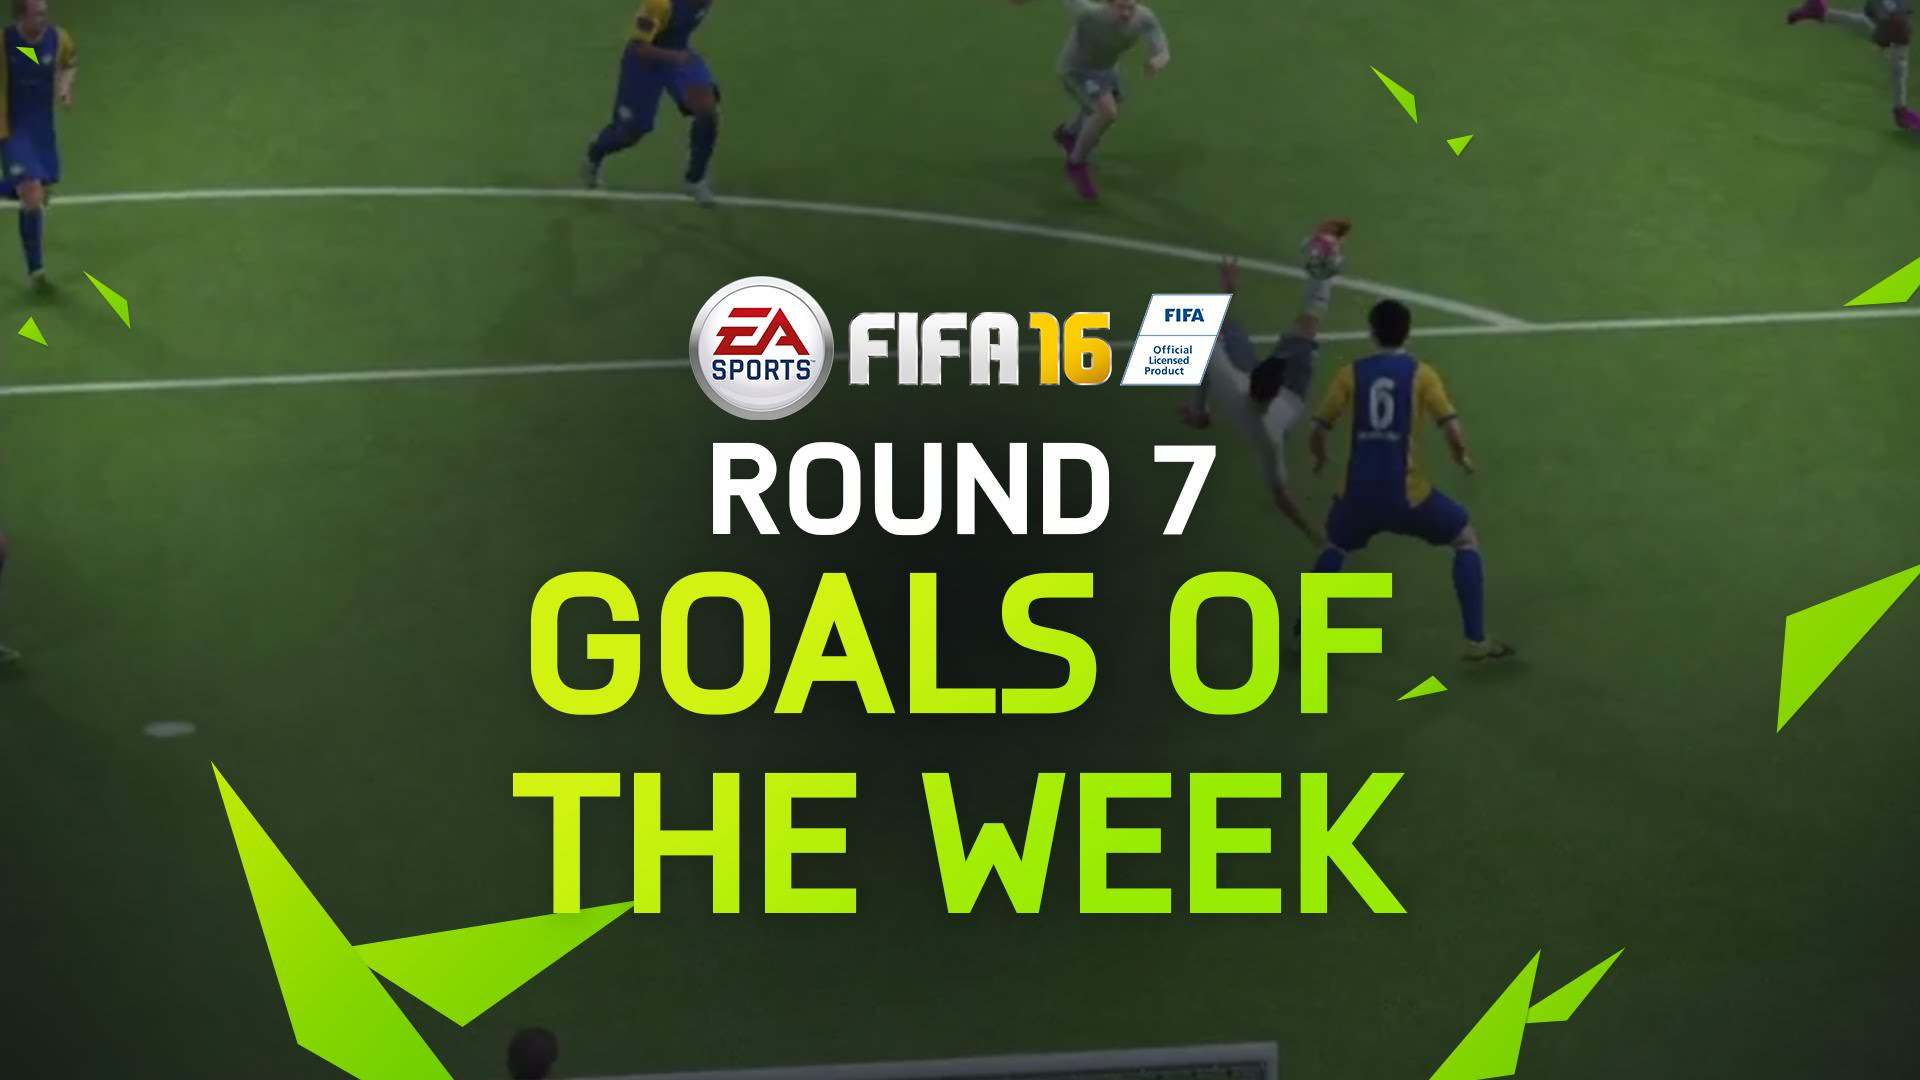 FIFA 16 Goals of the Week 7